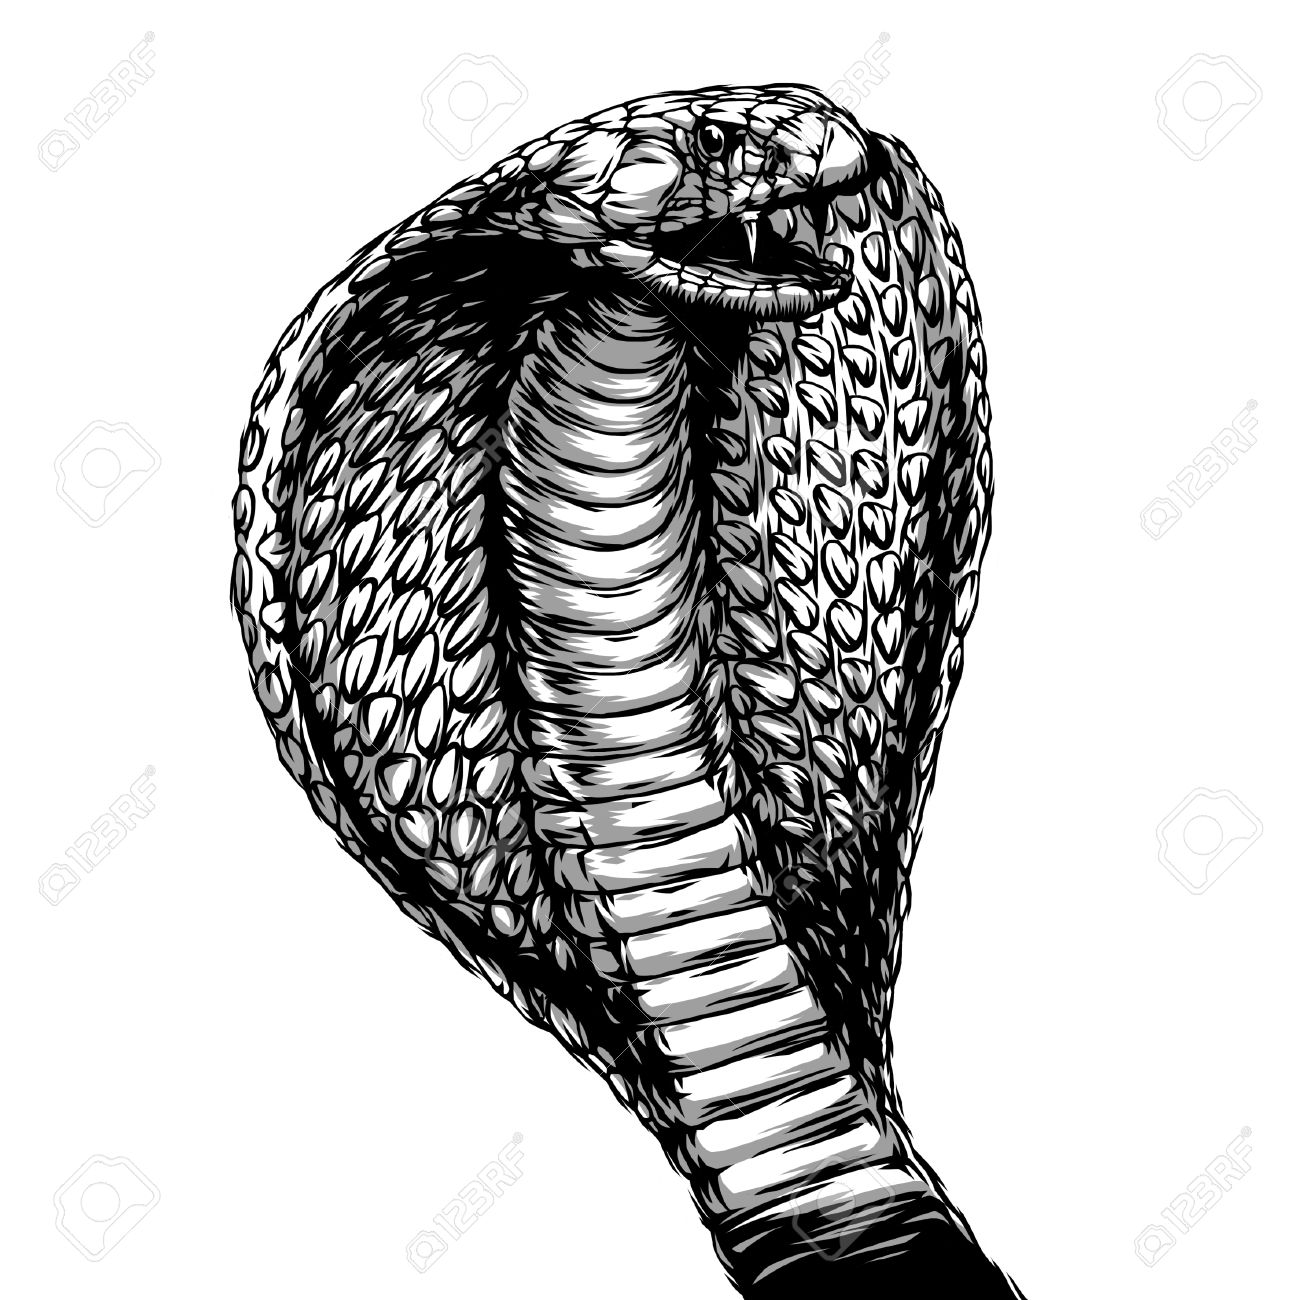 388 king cobra stock illustrations cliparts and royalty free king